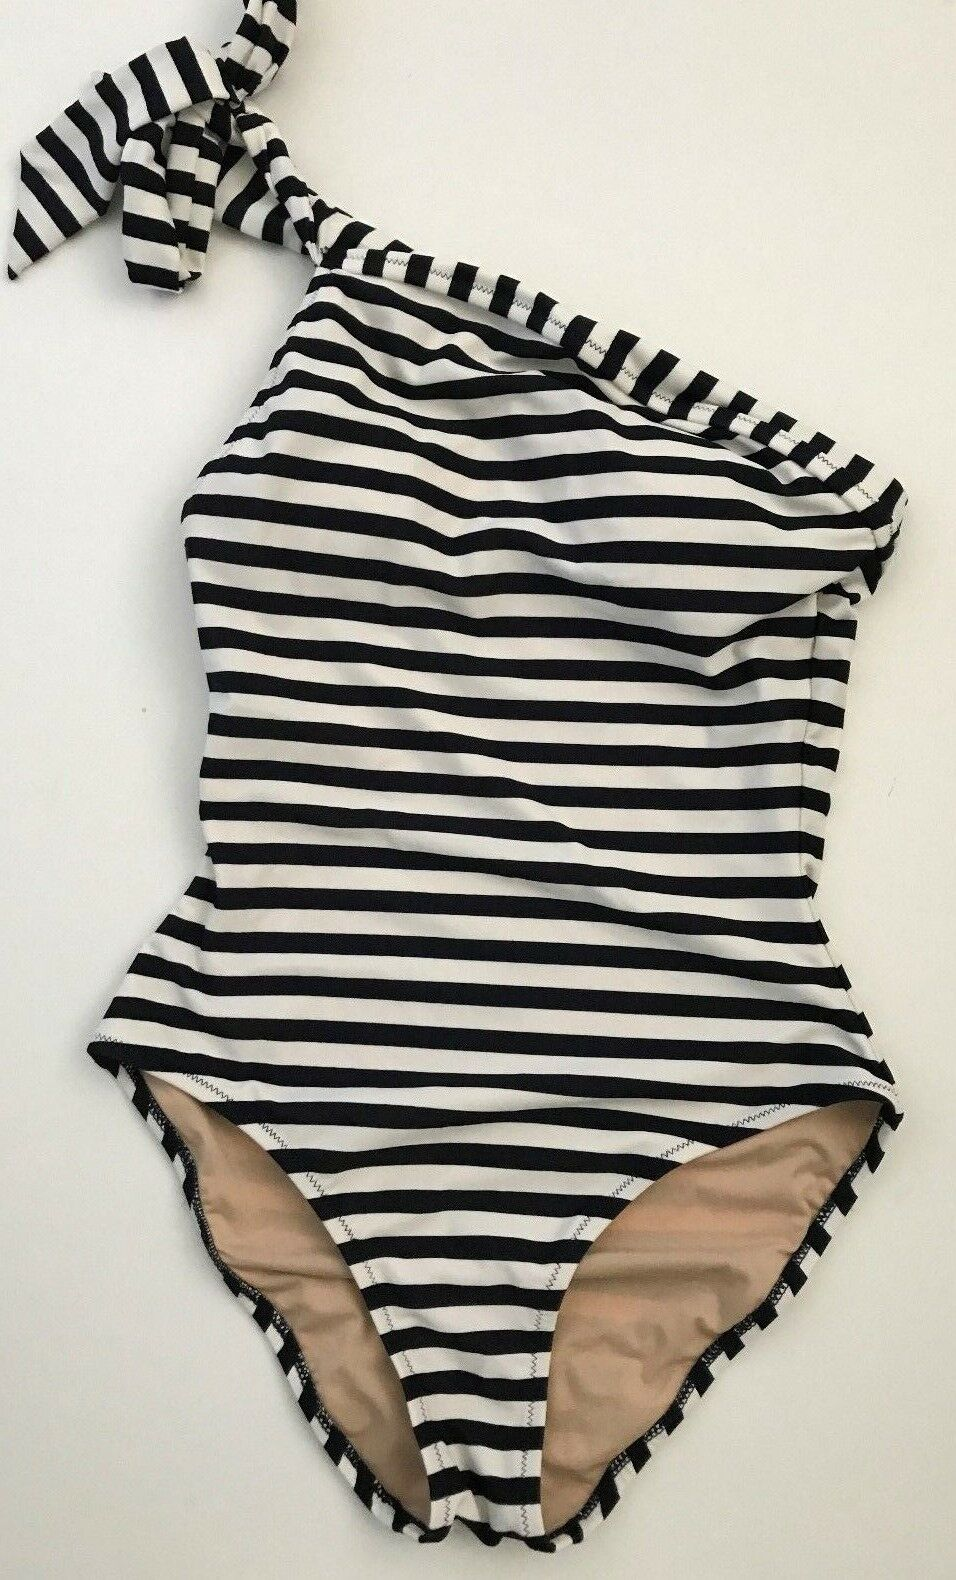 JCrew One-Shoulder One-Piece Swimsuit Classic Stripe 0 XS Navy Ivory F0921  118